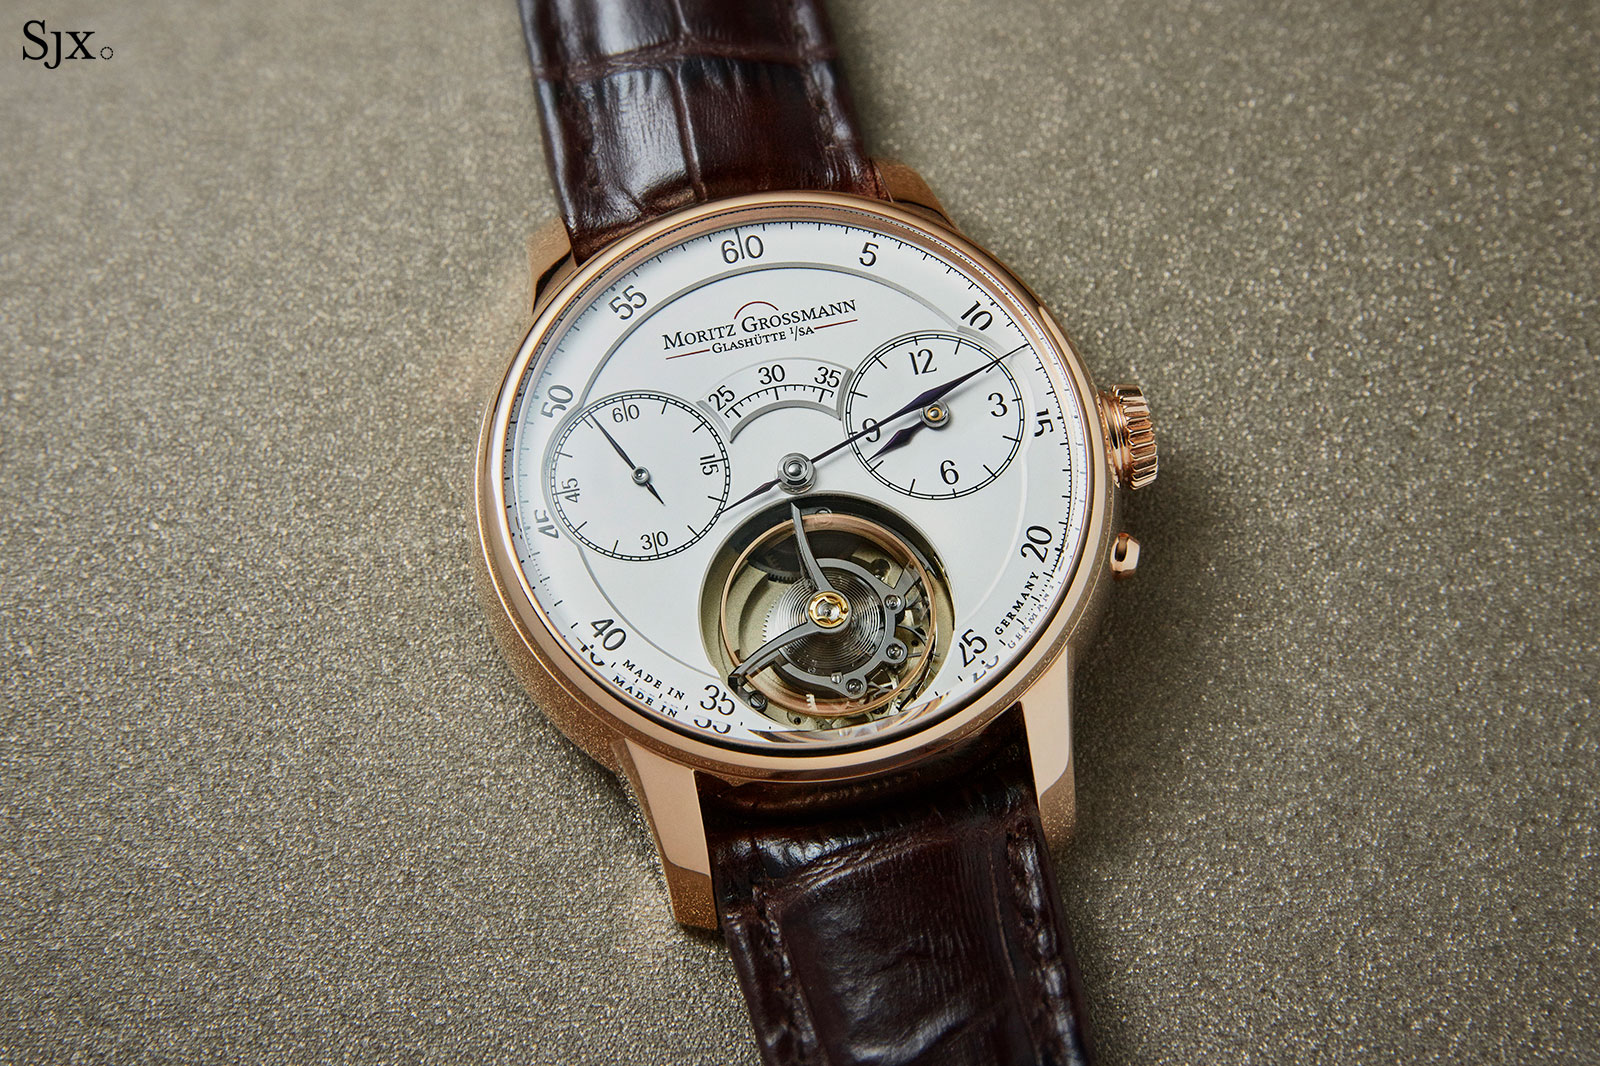 Moritz Grossmann Benu tourbillon rose gold